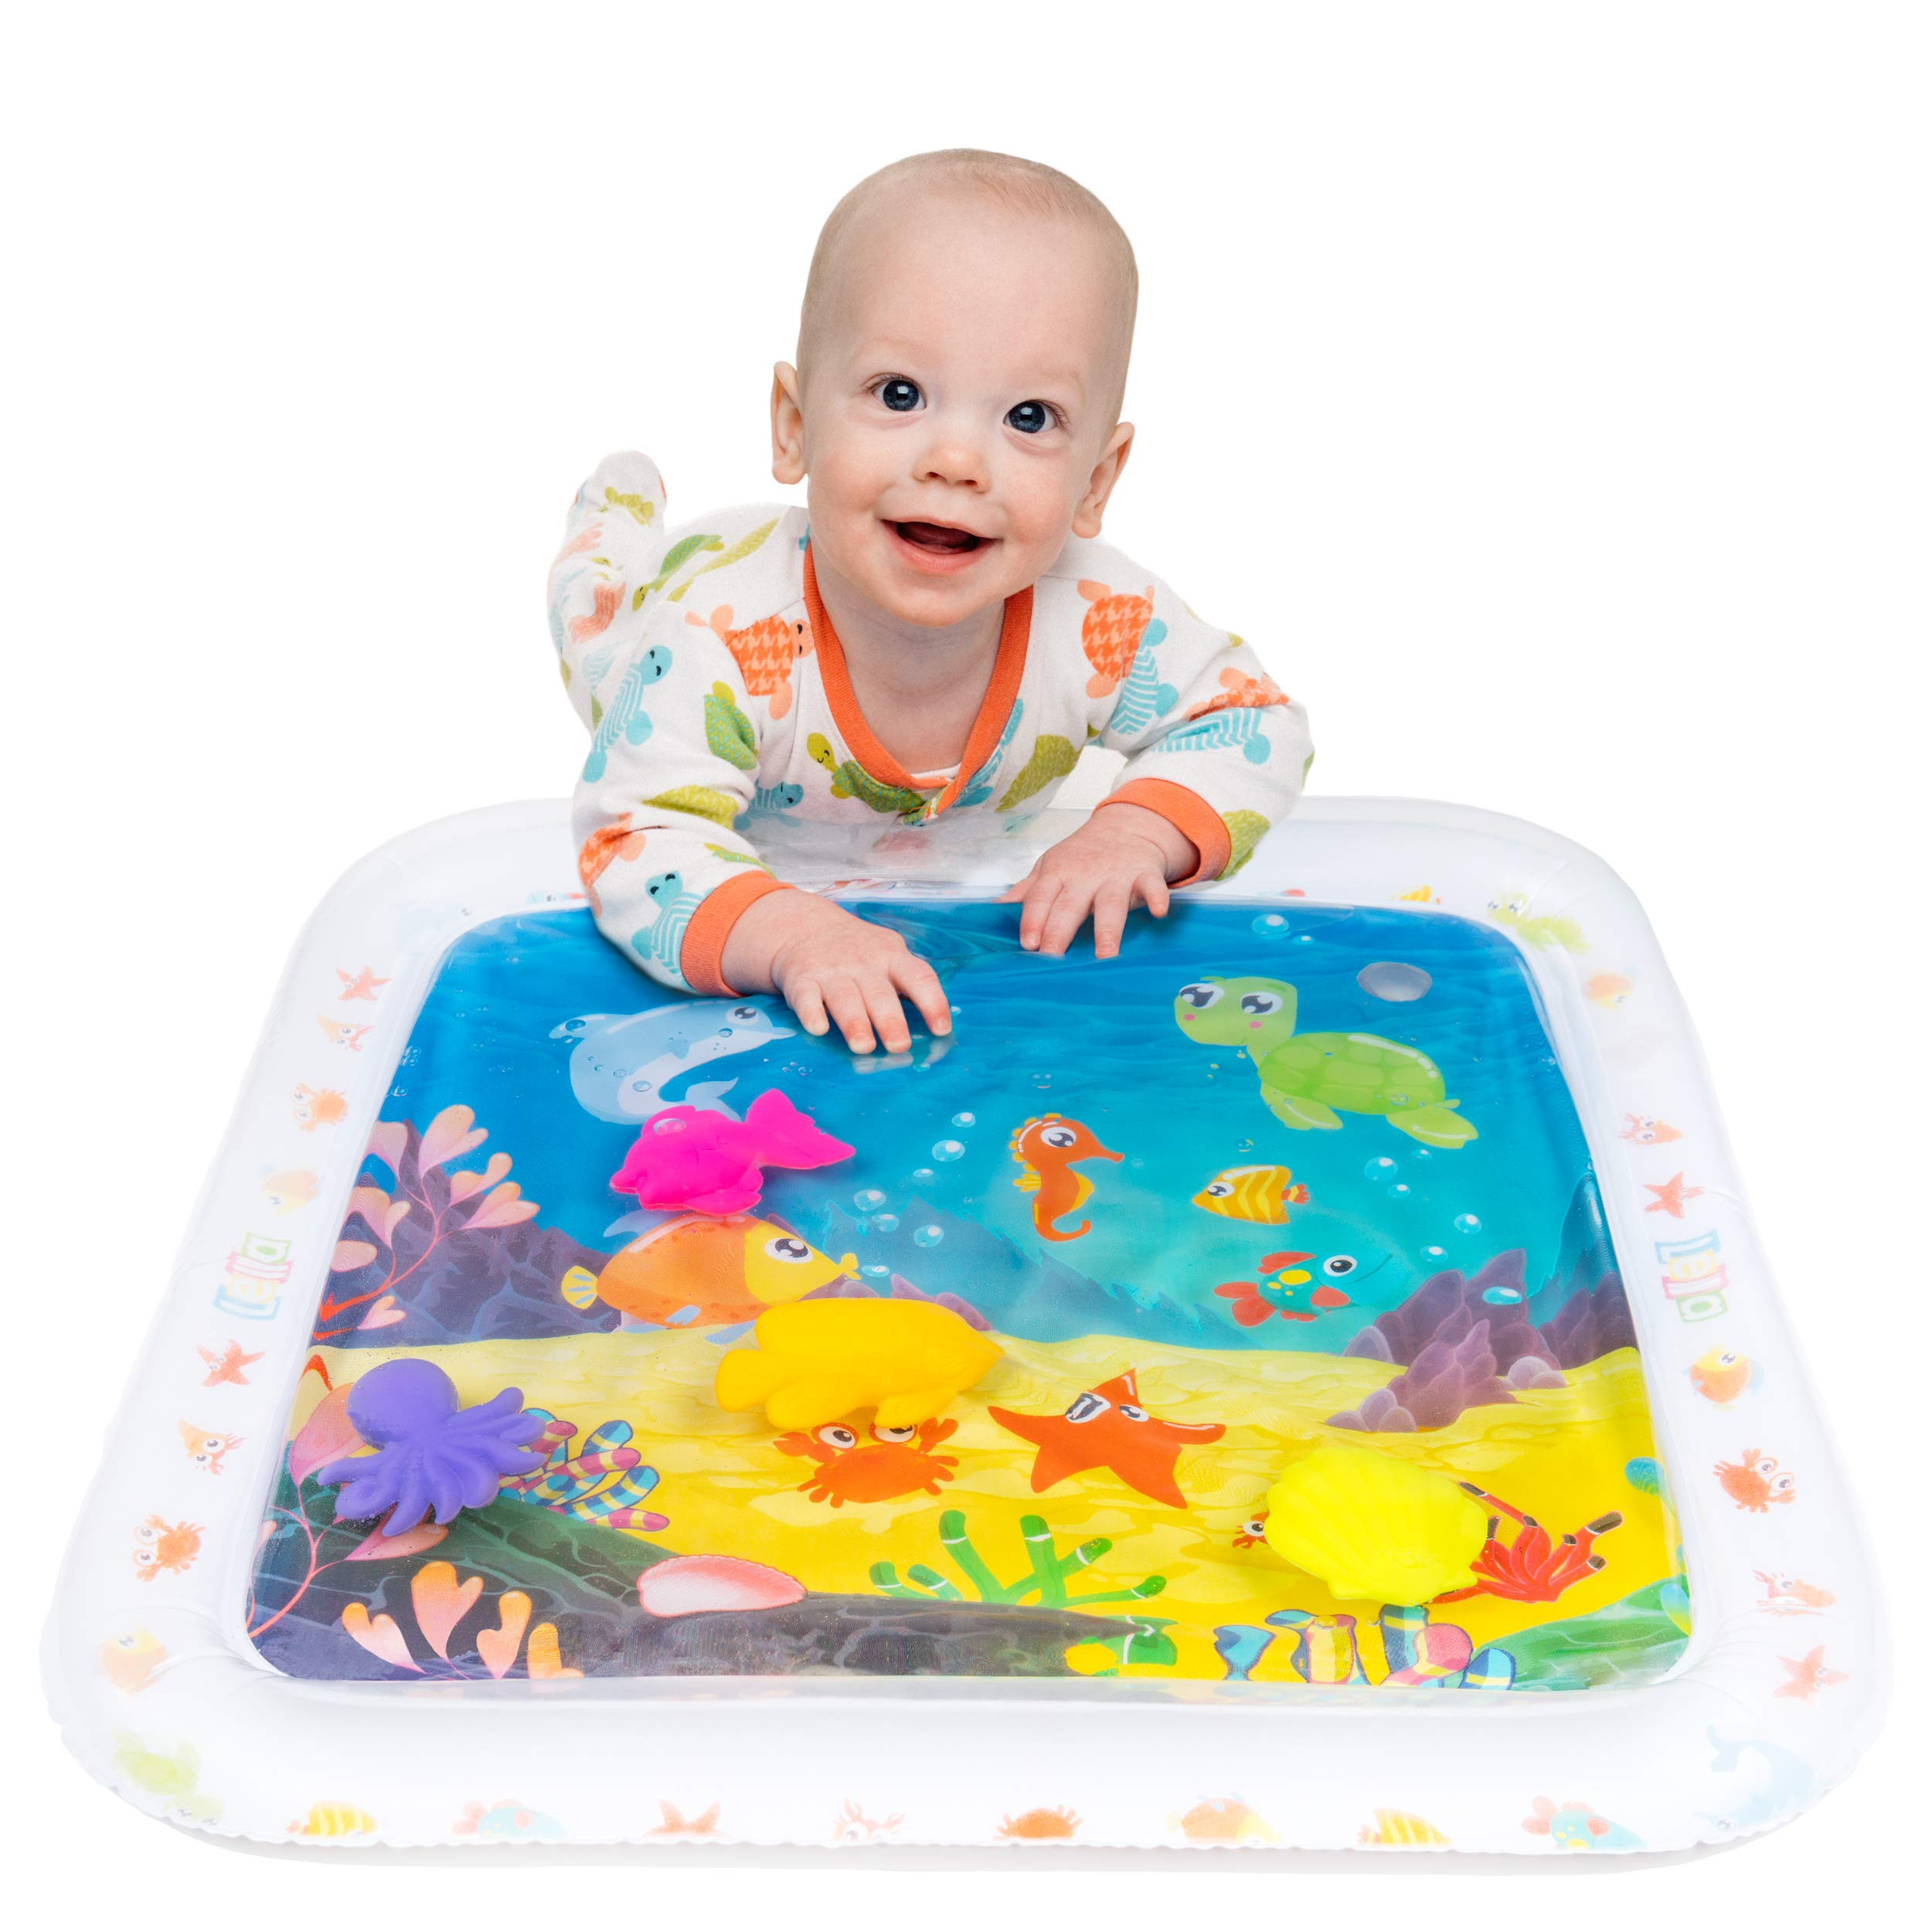 Lella Baby & Toddler Toys - Inflatable Tummy Time Water Play Mat - Sensory Developmental Activity and Play Center - Perfect for Baby, Infant and Toddlers Growth and Stimulation - BPA Free